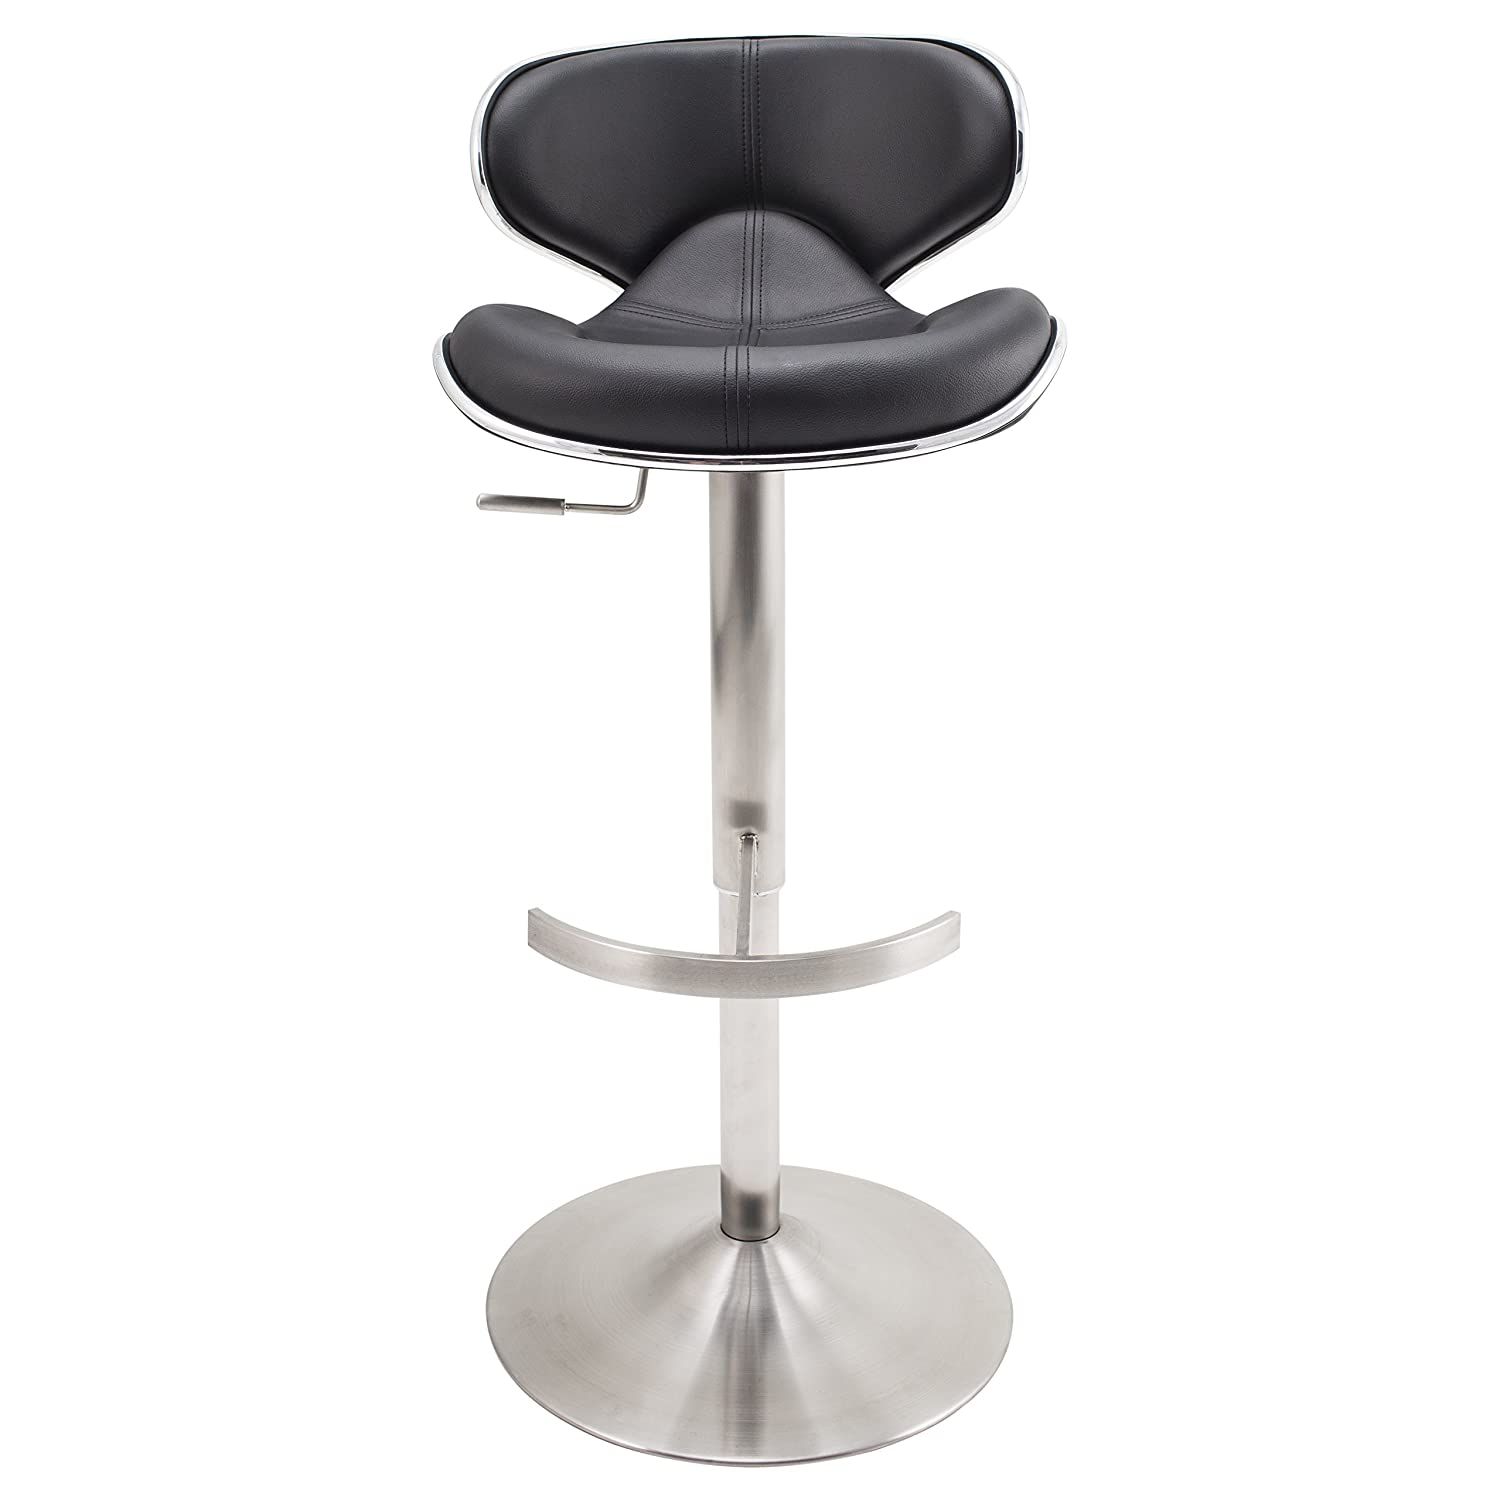 Mix Brushed Stainless Steel Faux Leather Black Adjustable Height Swivel Bar Stool with Round Trumpet Base